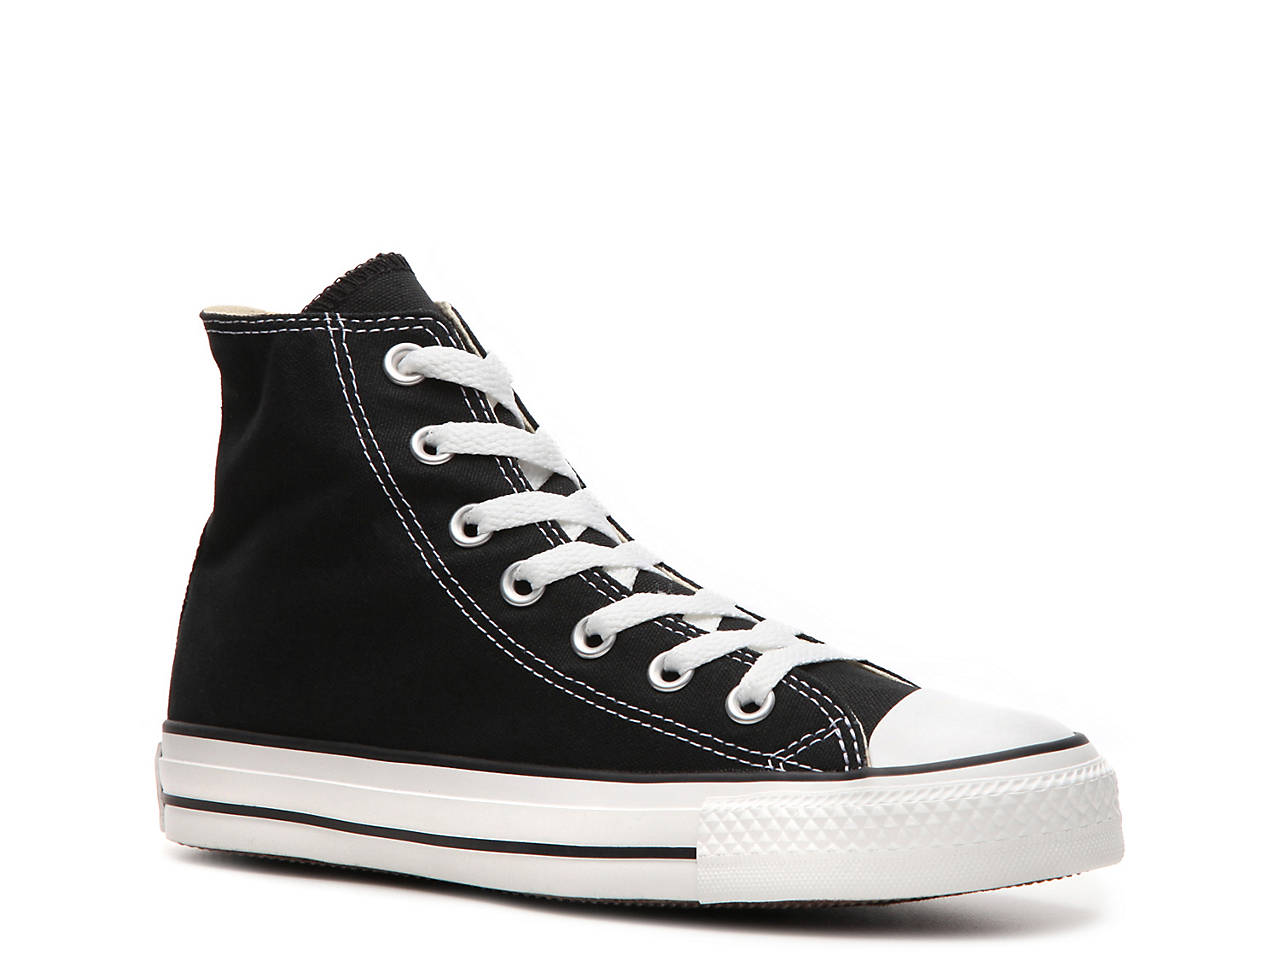 f4ad84bcfb85 Converse Chuck Taylor All Star High-Top Sneaker - Women s Women s ...